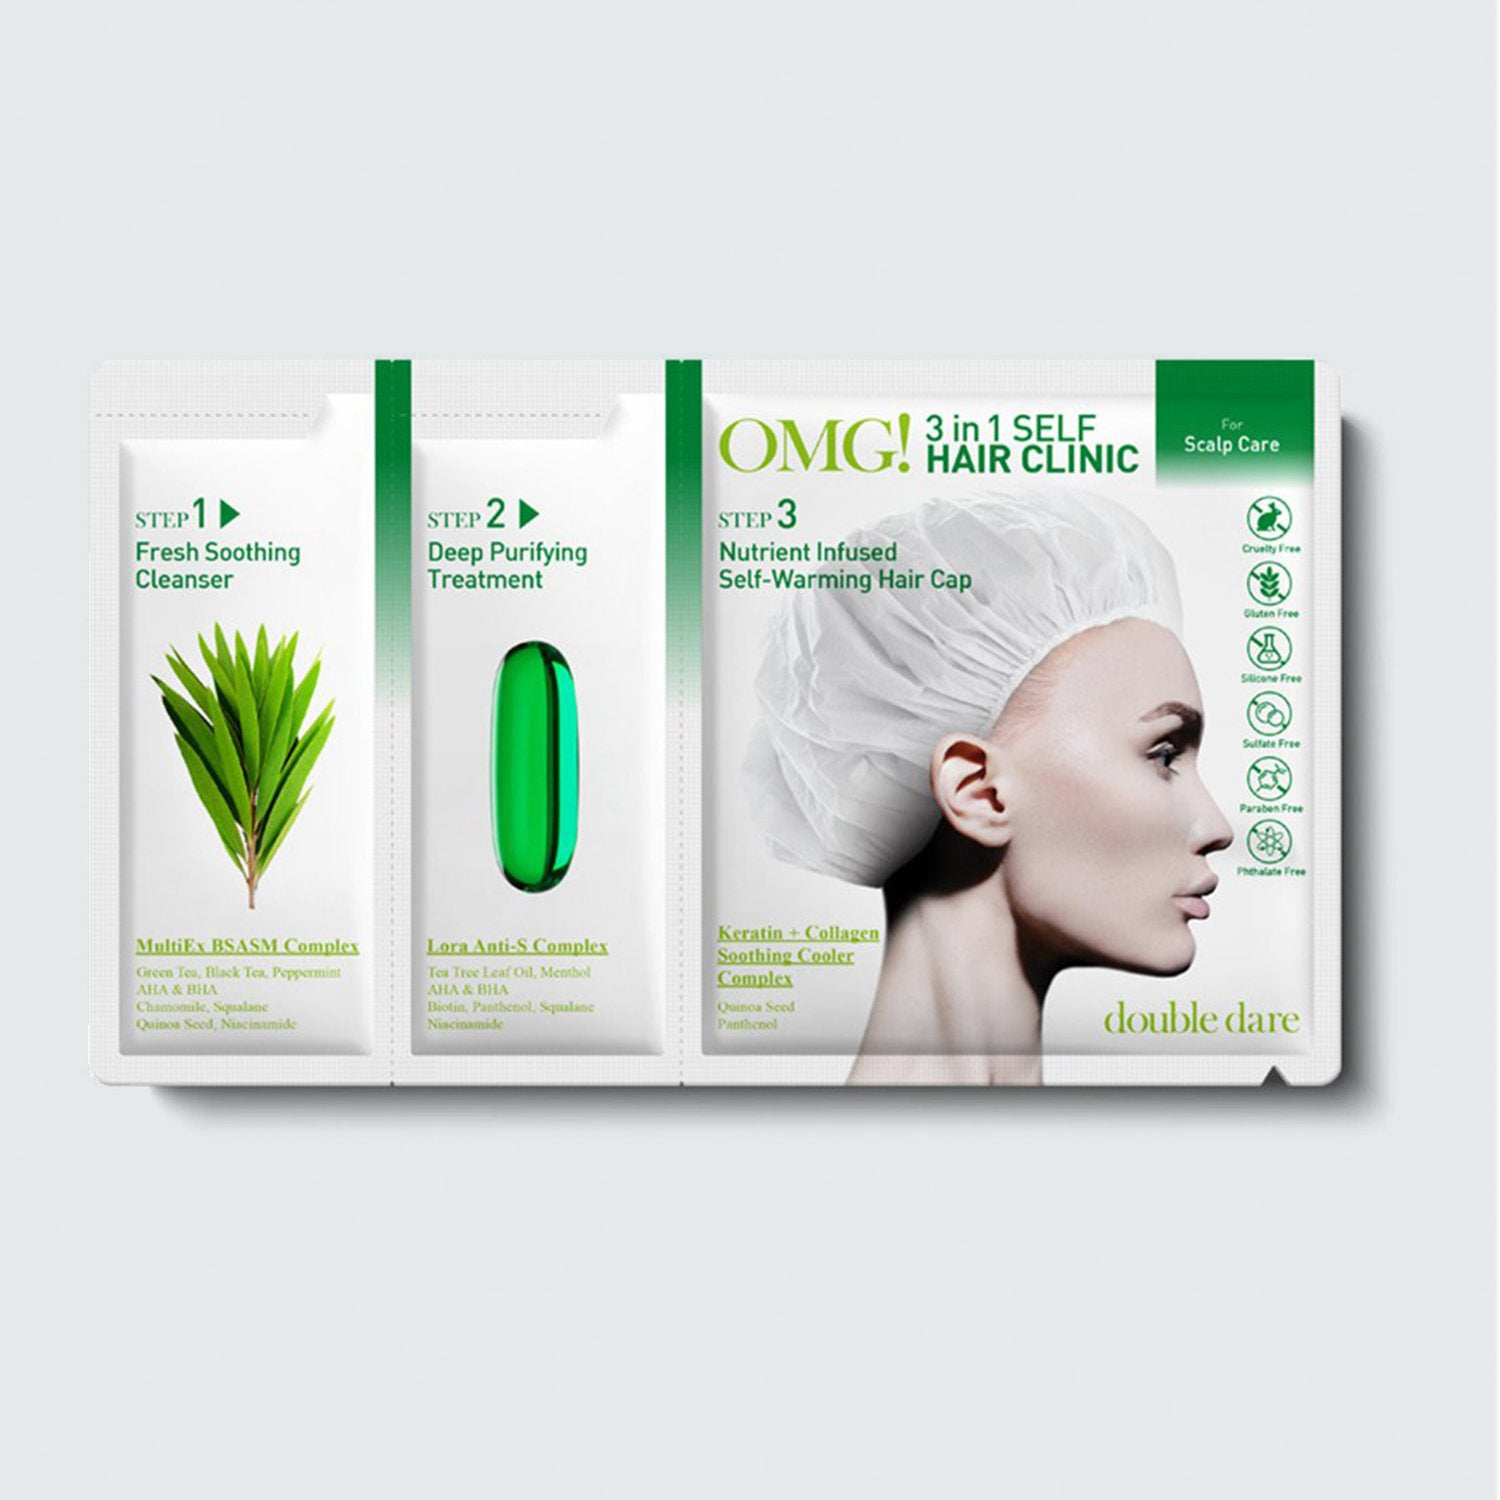 OMG! 3in1 SELF HAIR <br> CLINIC for Scalp Care - DOUBLE DARE